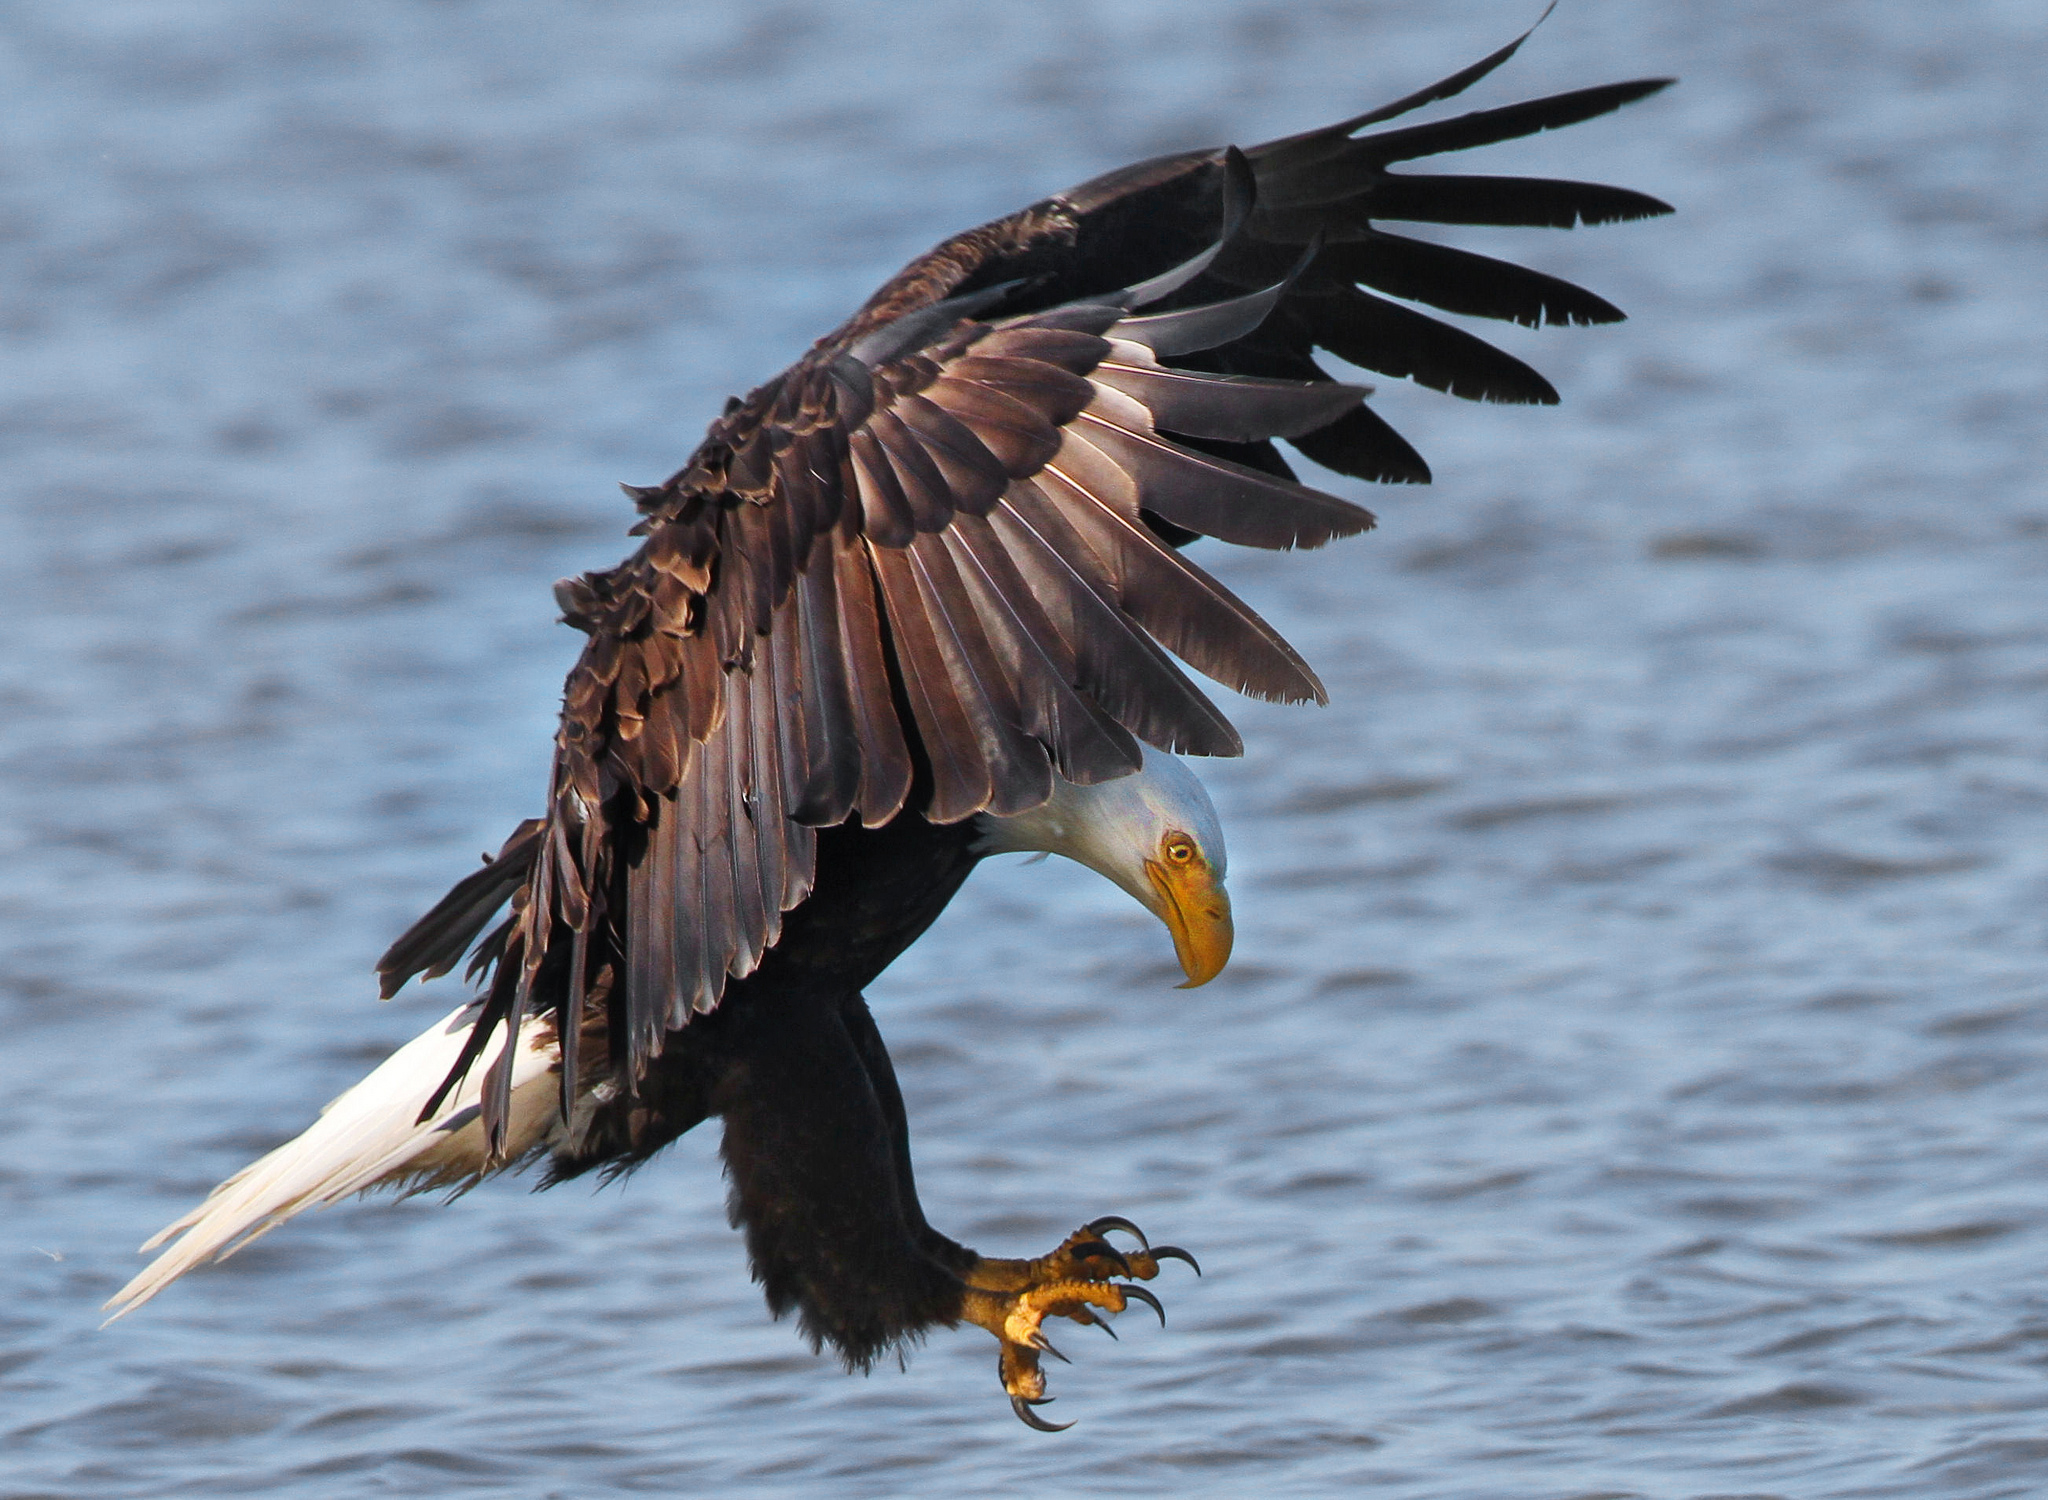 A bald eagle on the hunt. Nigel/Flickr through Community Commons.